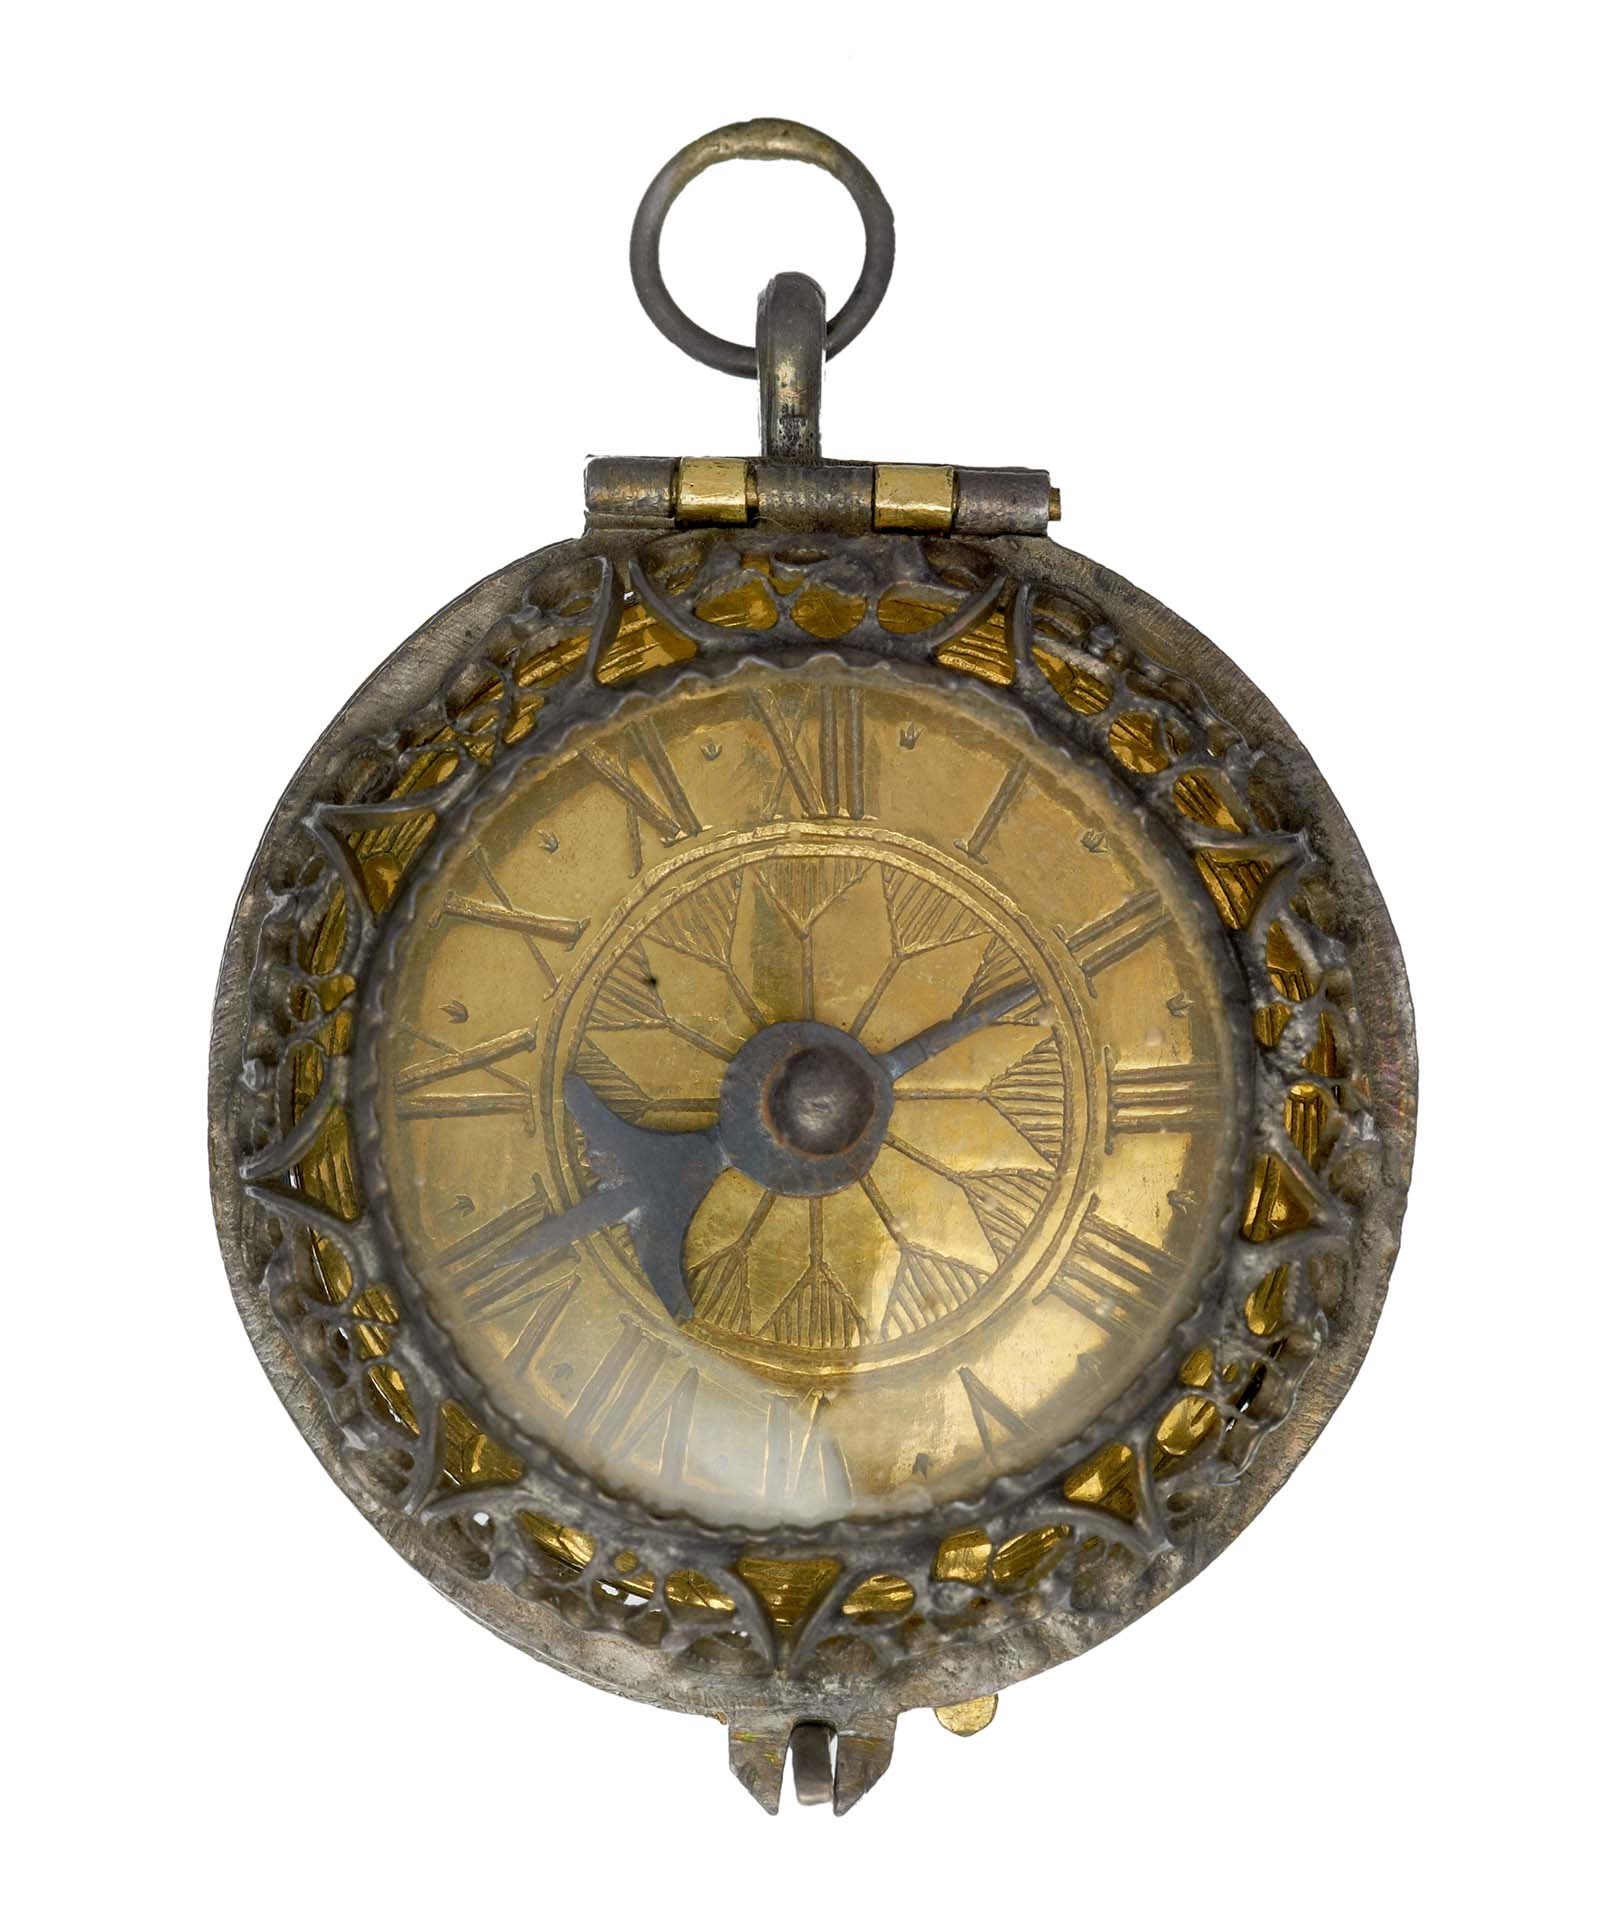 an ornamental fob watch with gold face